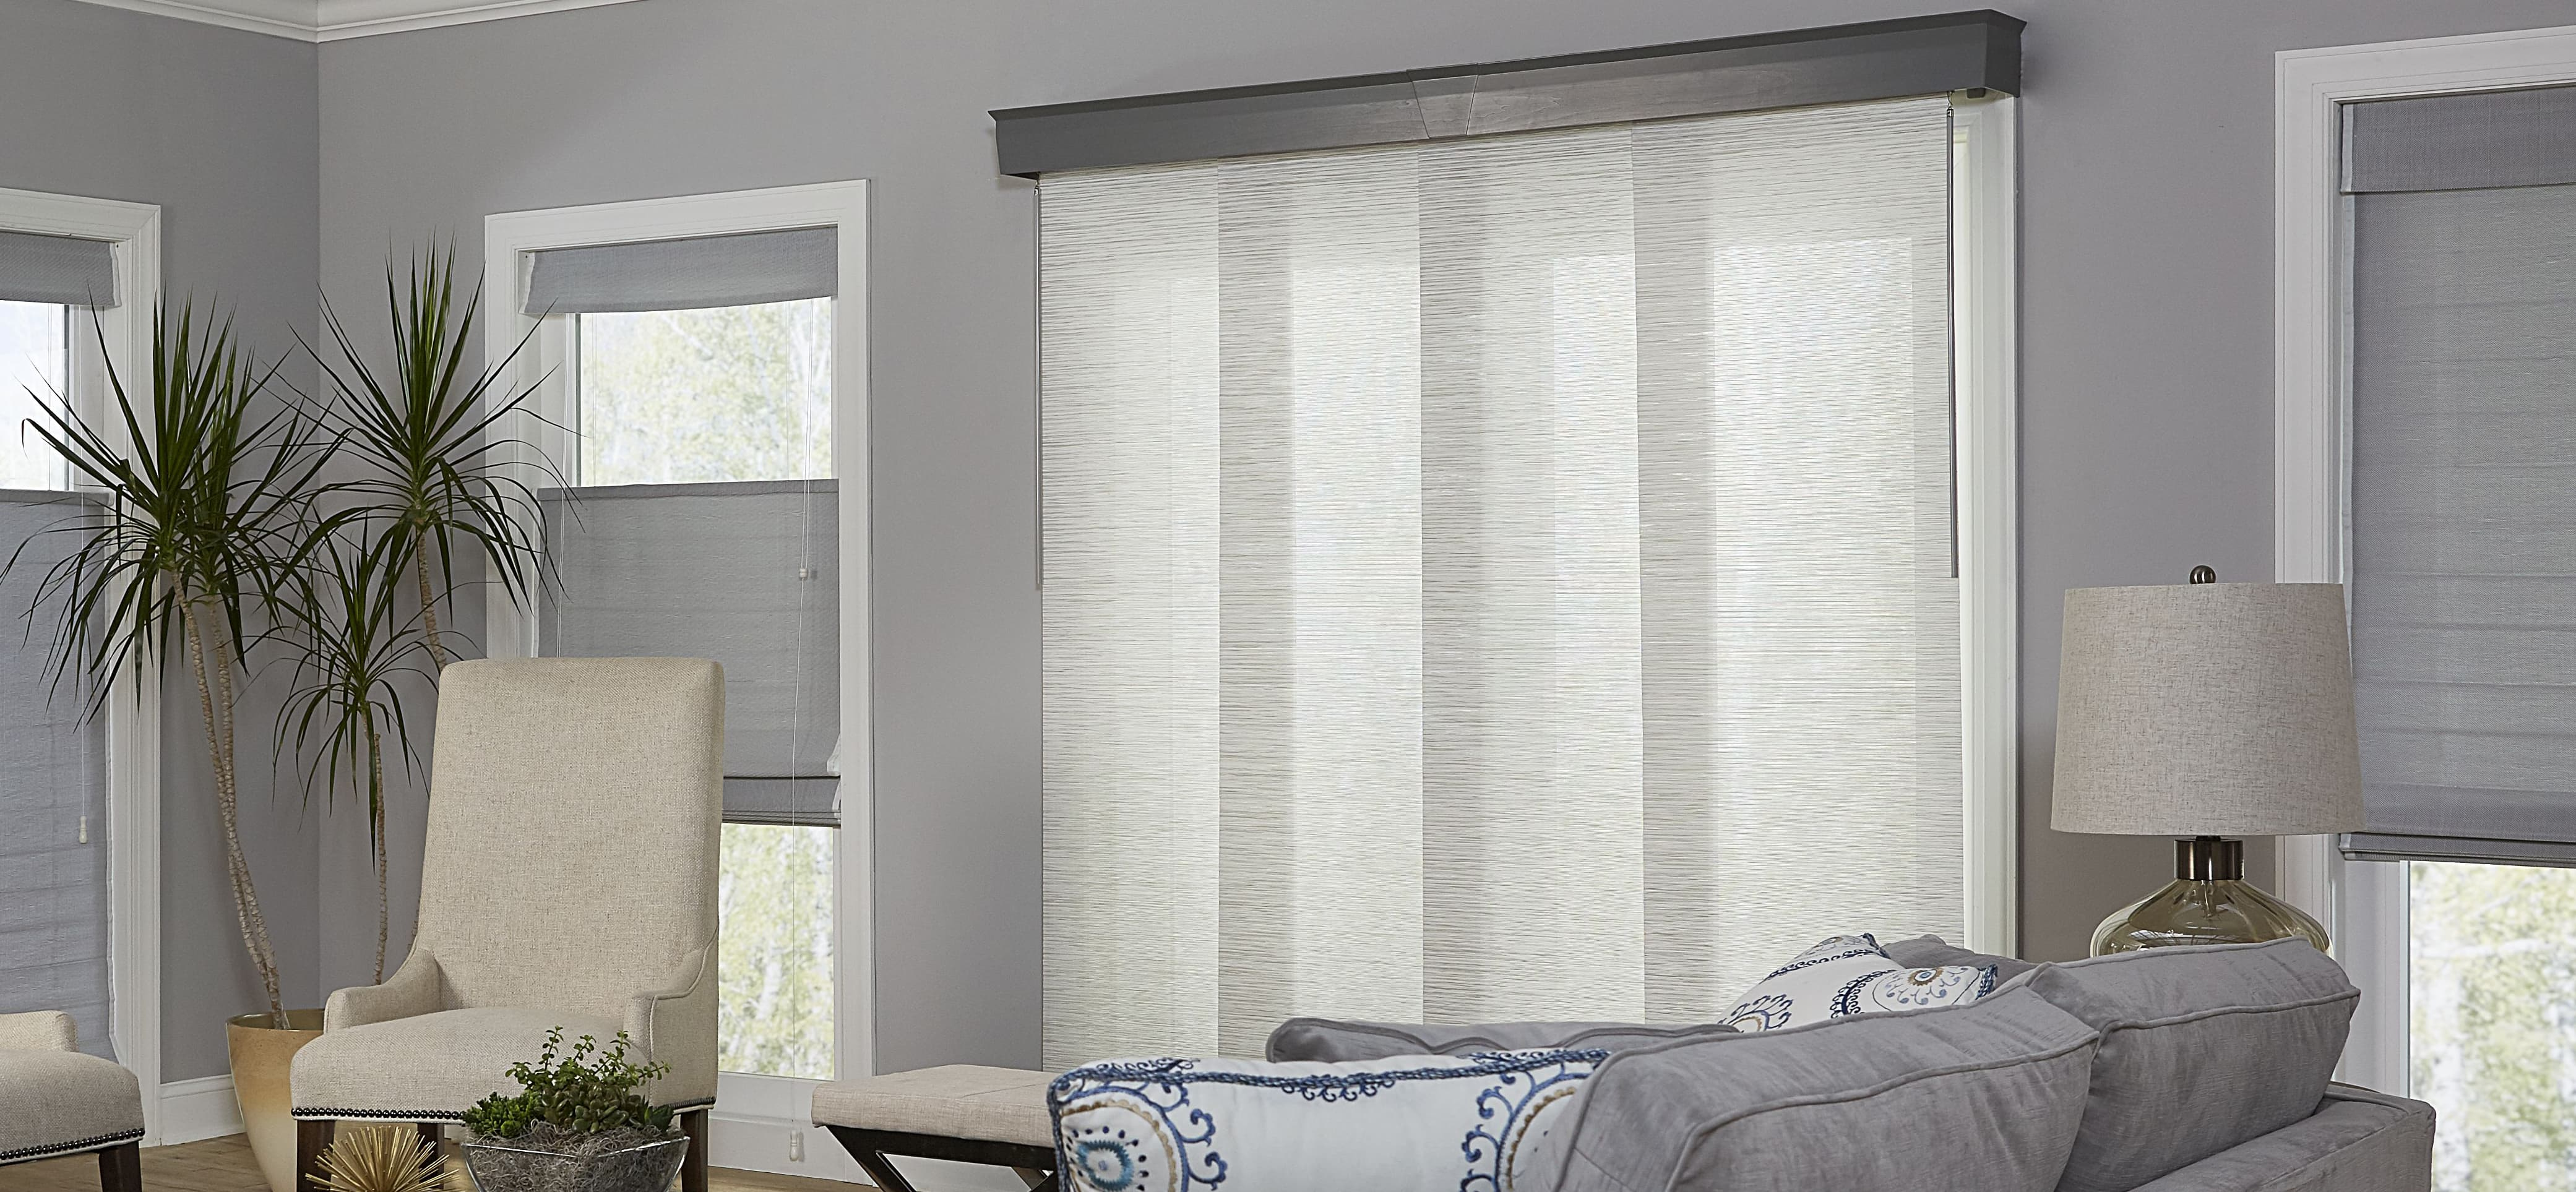 Window Coverings To Keep Heat Out Blinds For Sliding Glass Doors Alternatives To Vertical Blinds